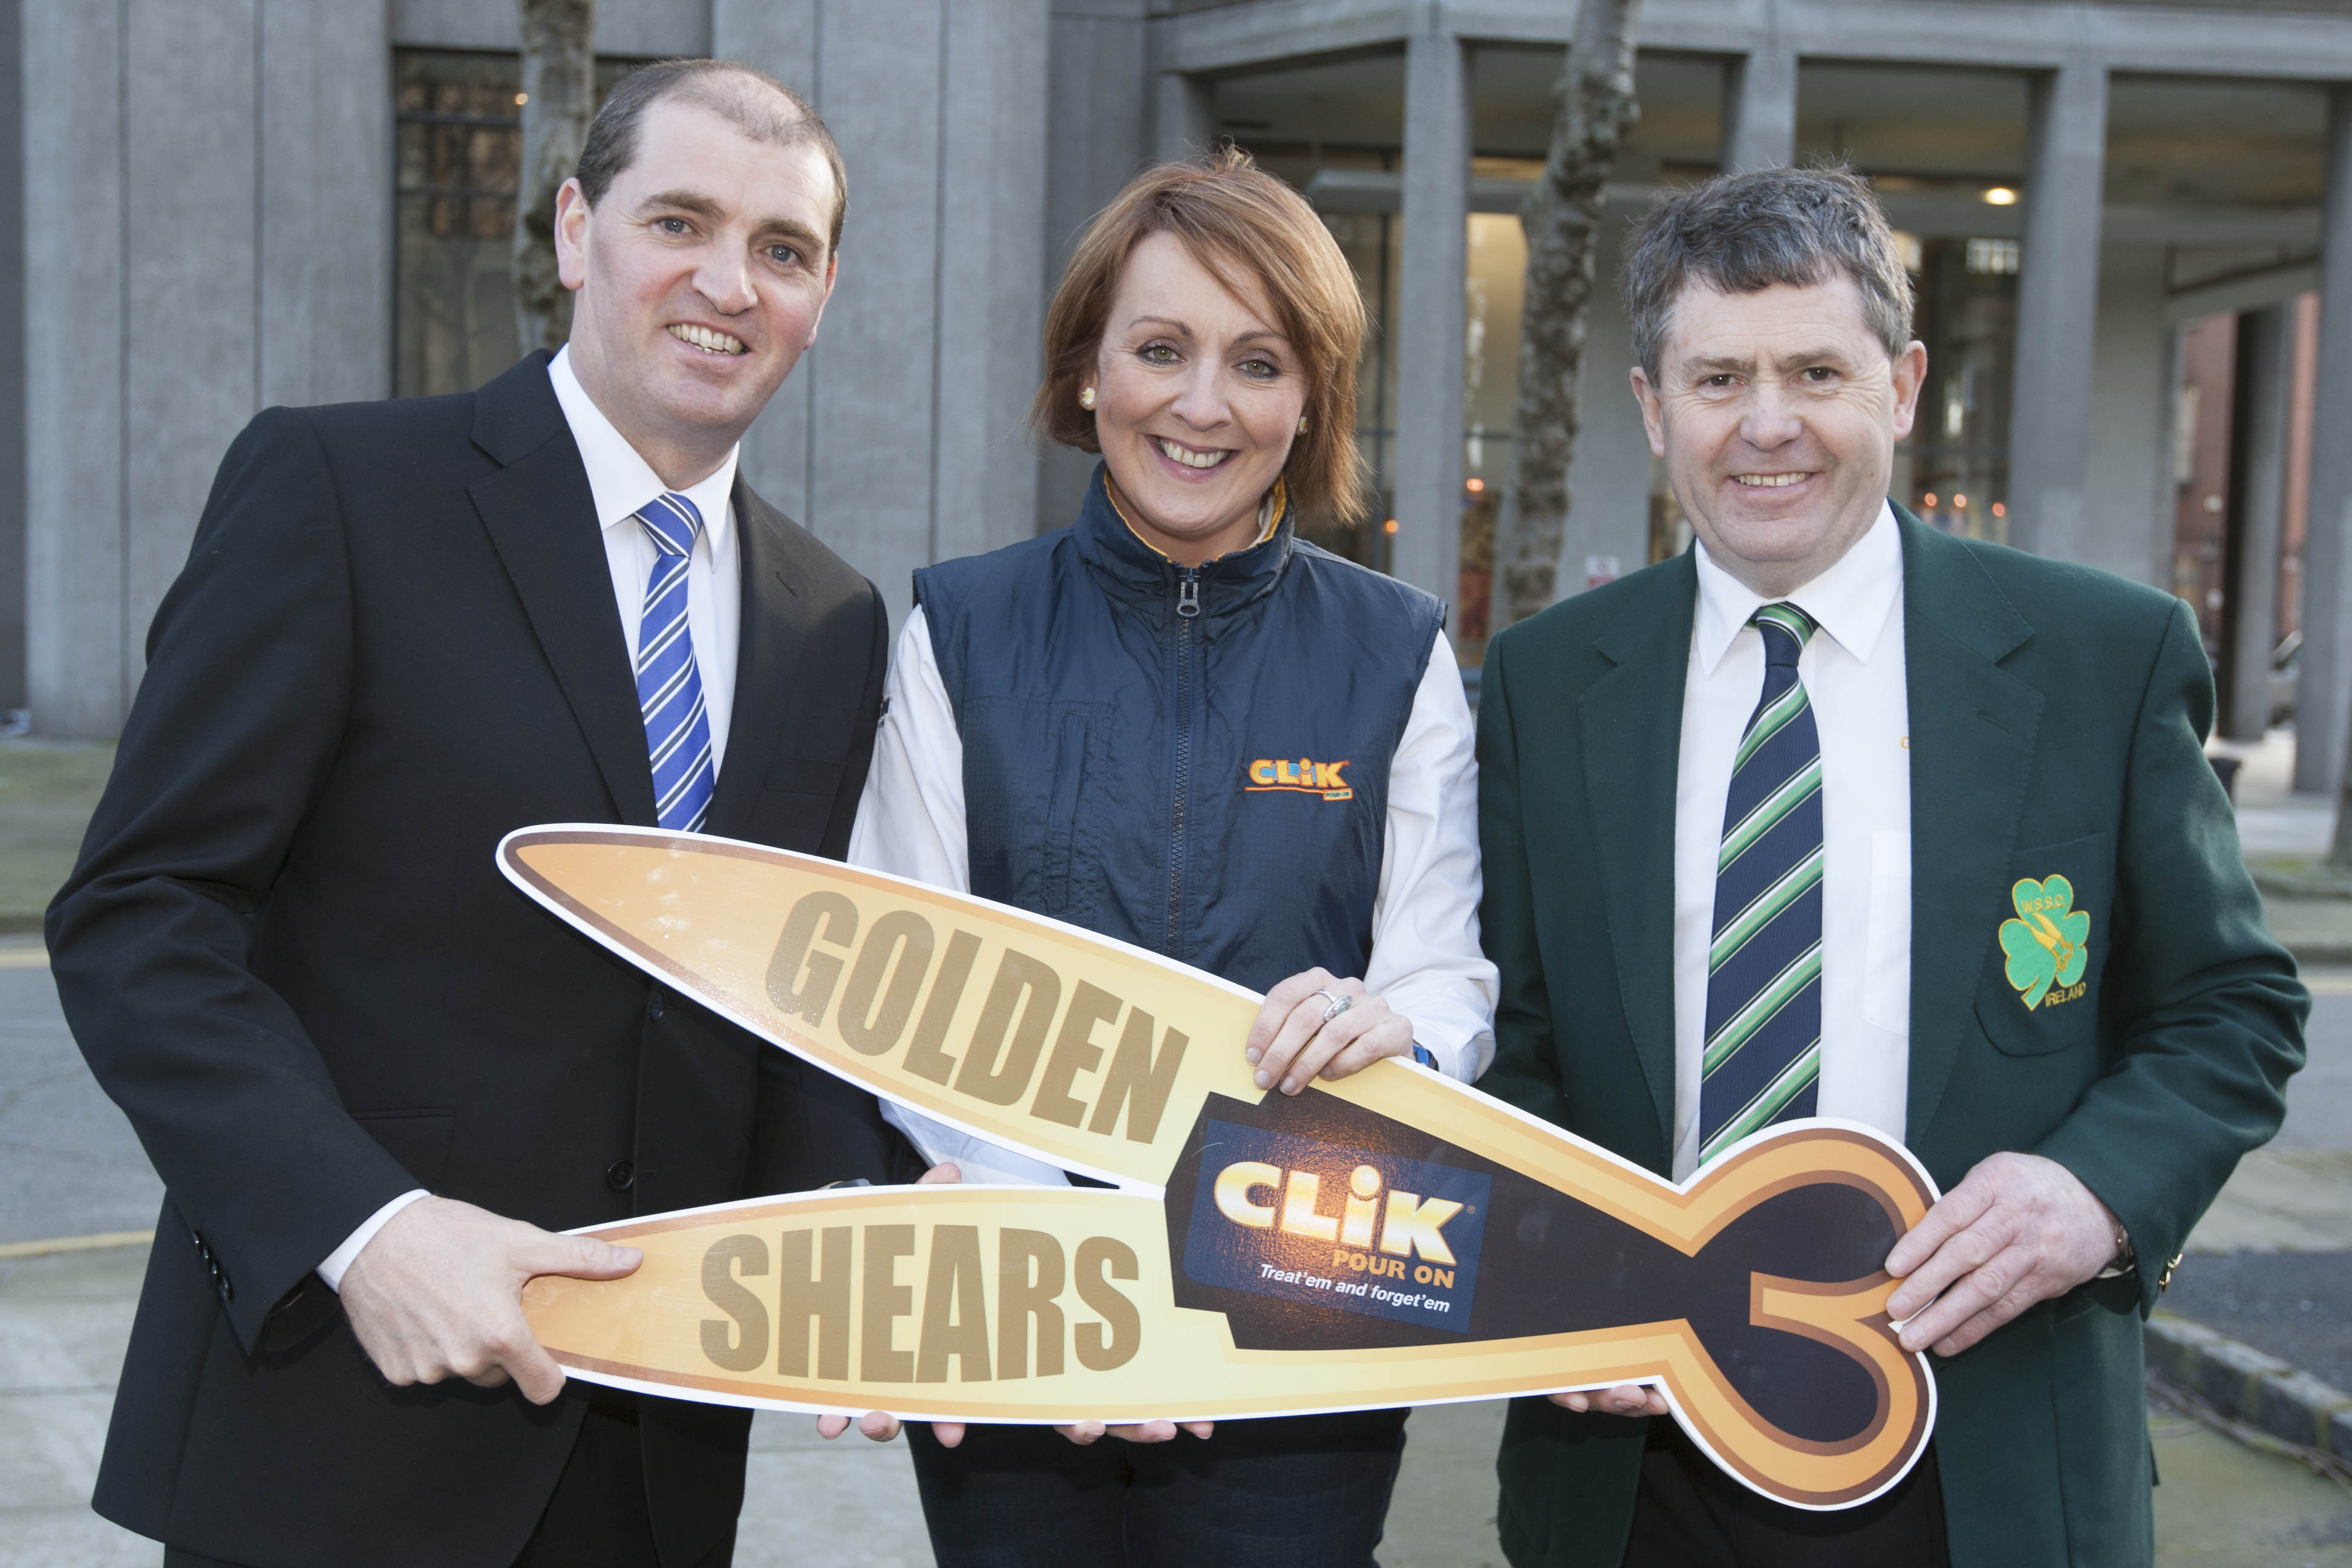 George Graham pictured on the right at the launch of last year's Golden Shears